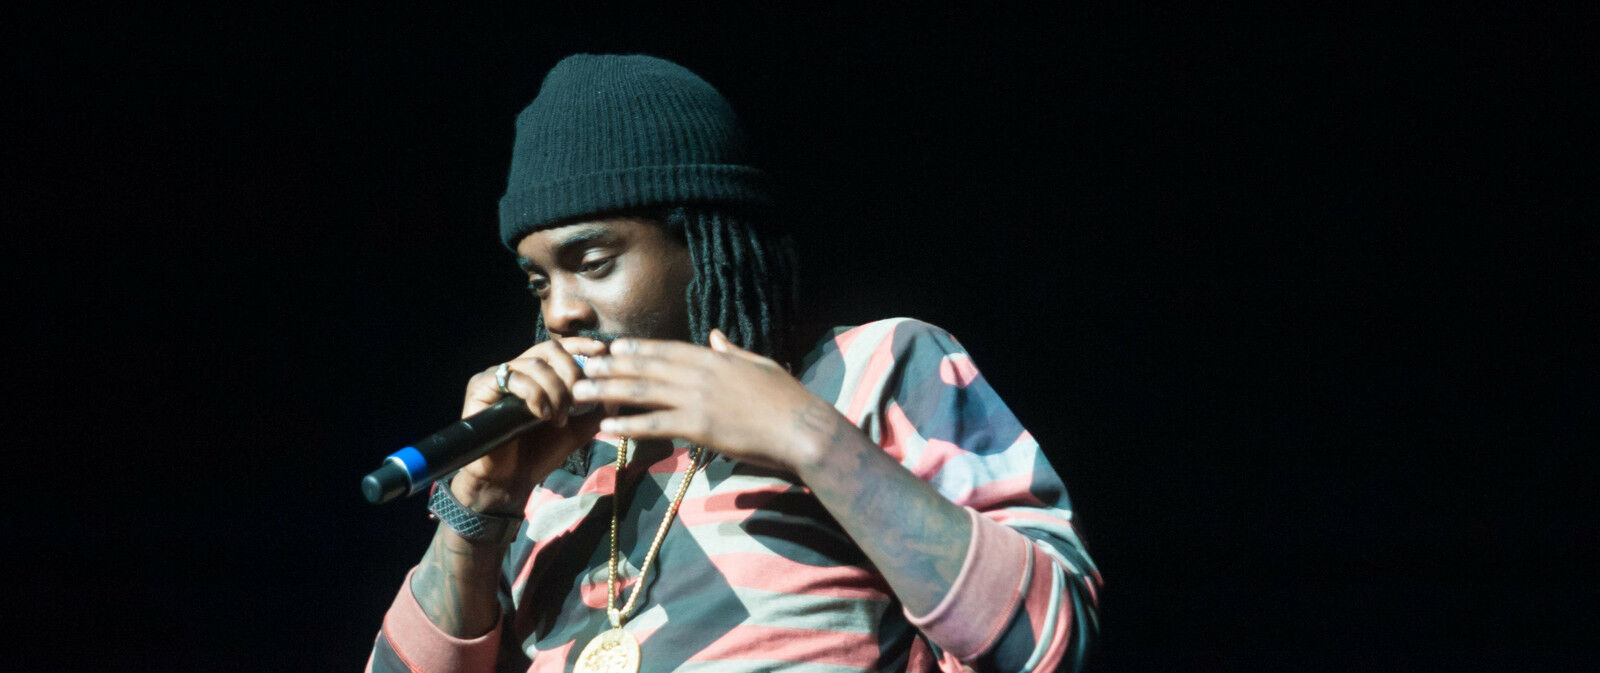 Wale with Special Guests Tickets (16+ Event)